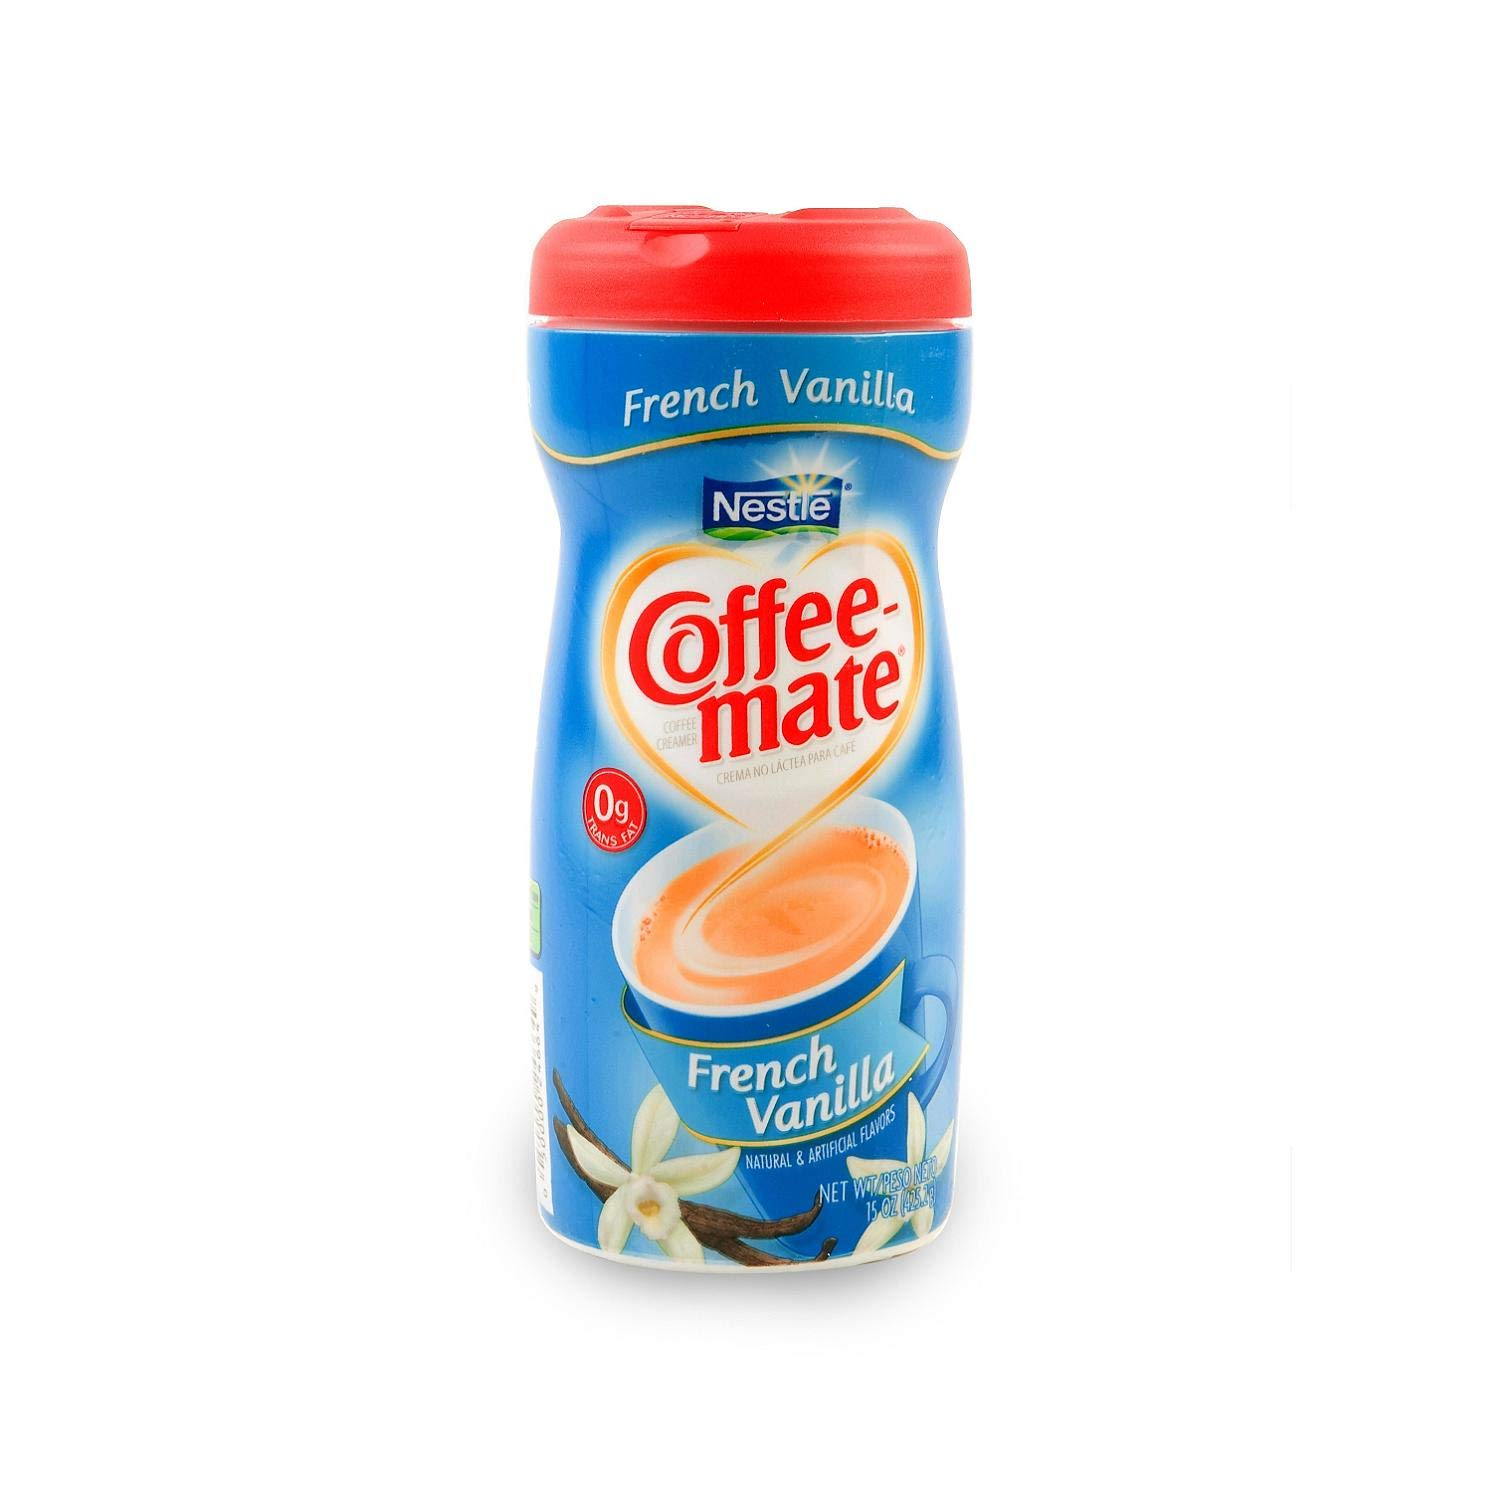 Coffee-mate Powdered Coffee Creamer - French Vanilla - 15 oz - 2 pk by Nestle Coffee Mate